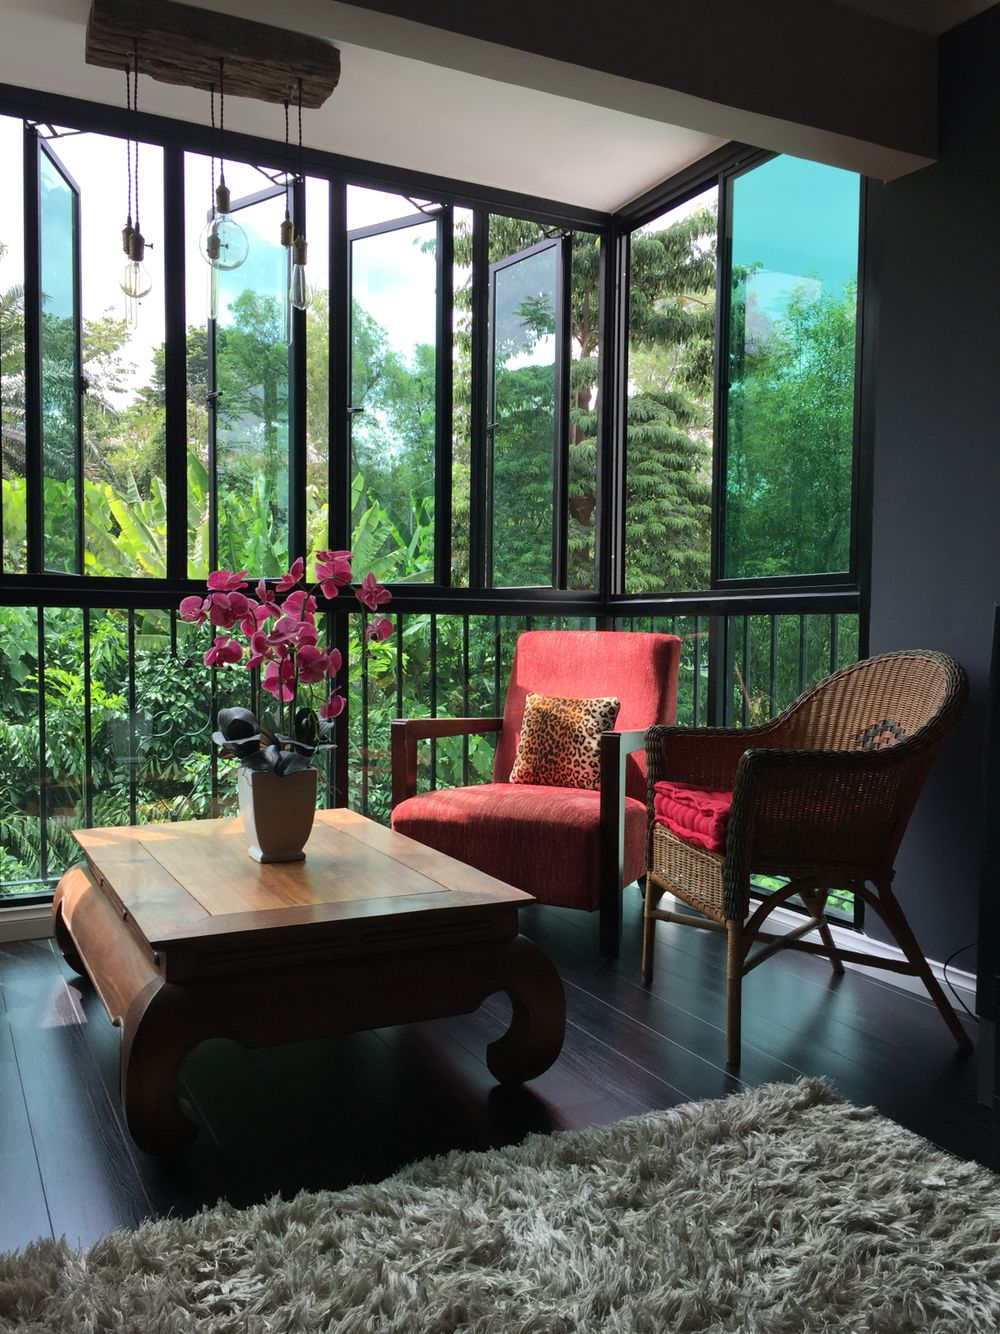 Living Room Balcony Design: Balcony Covert To Living Room With Black Laminated Floor